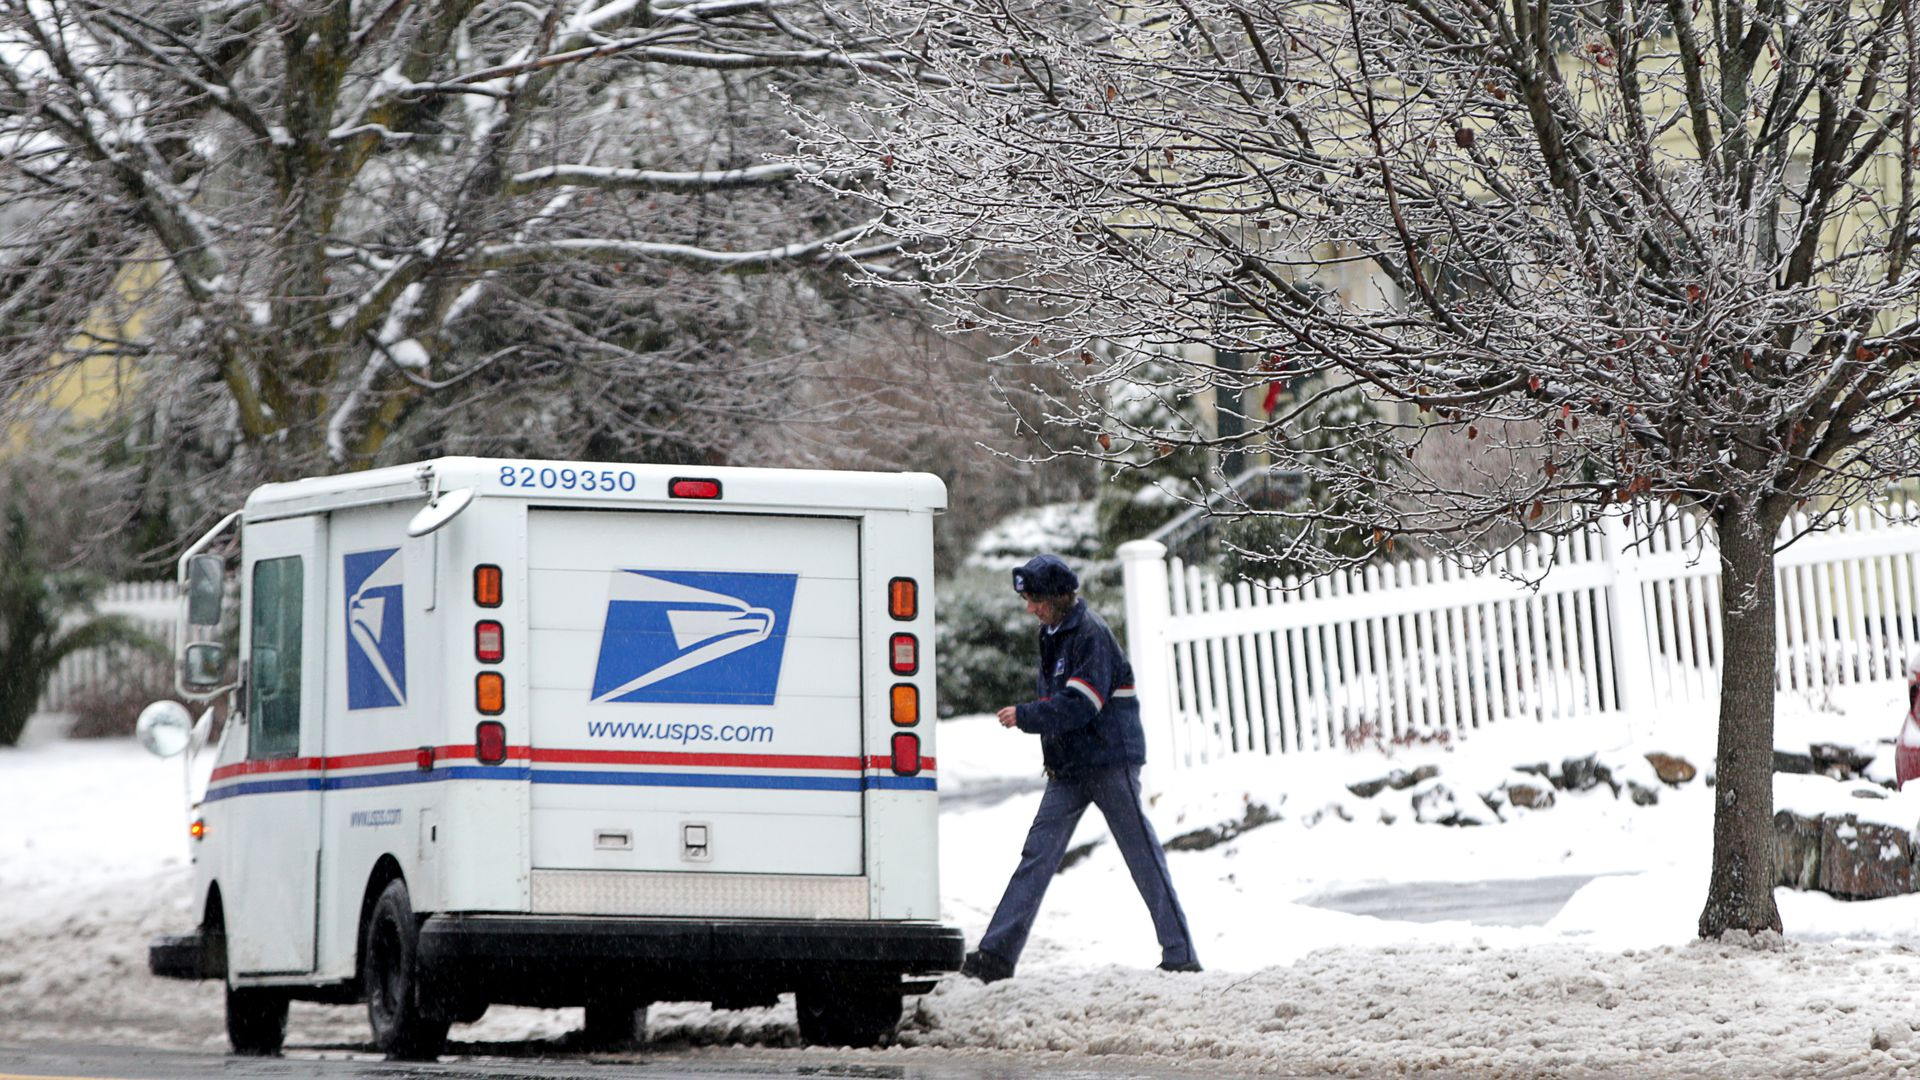 A United States Postal Service mail carrier.